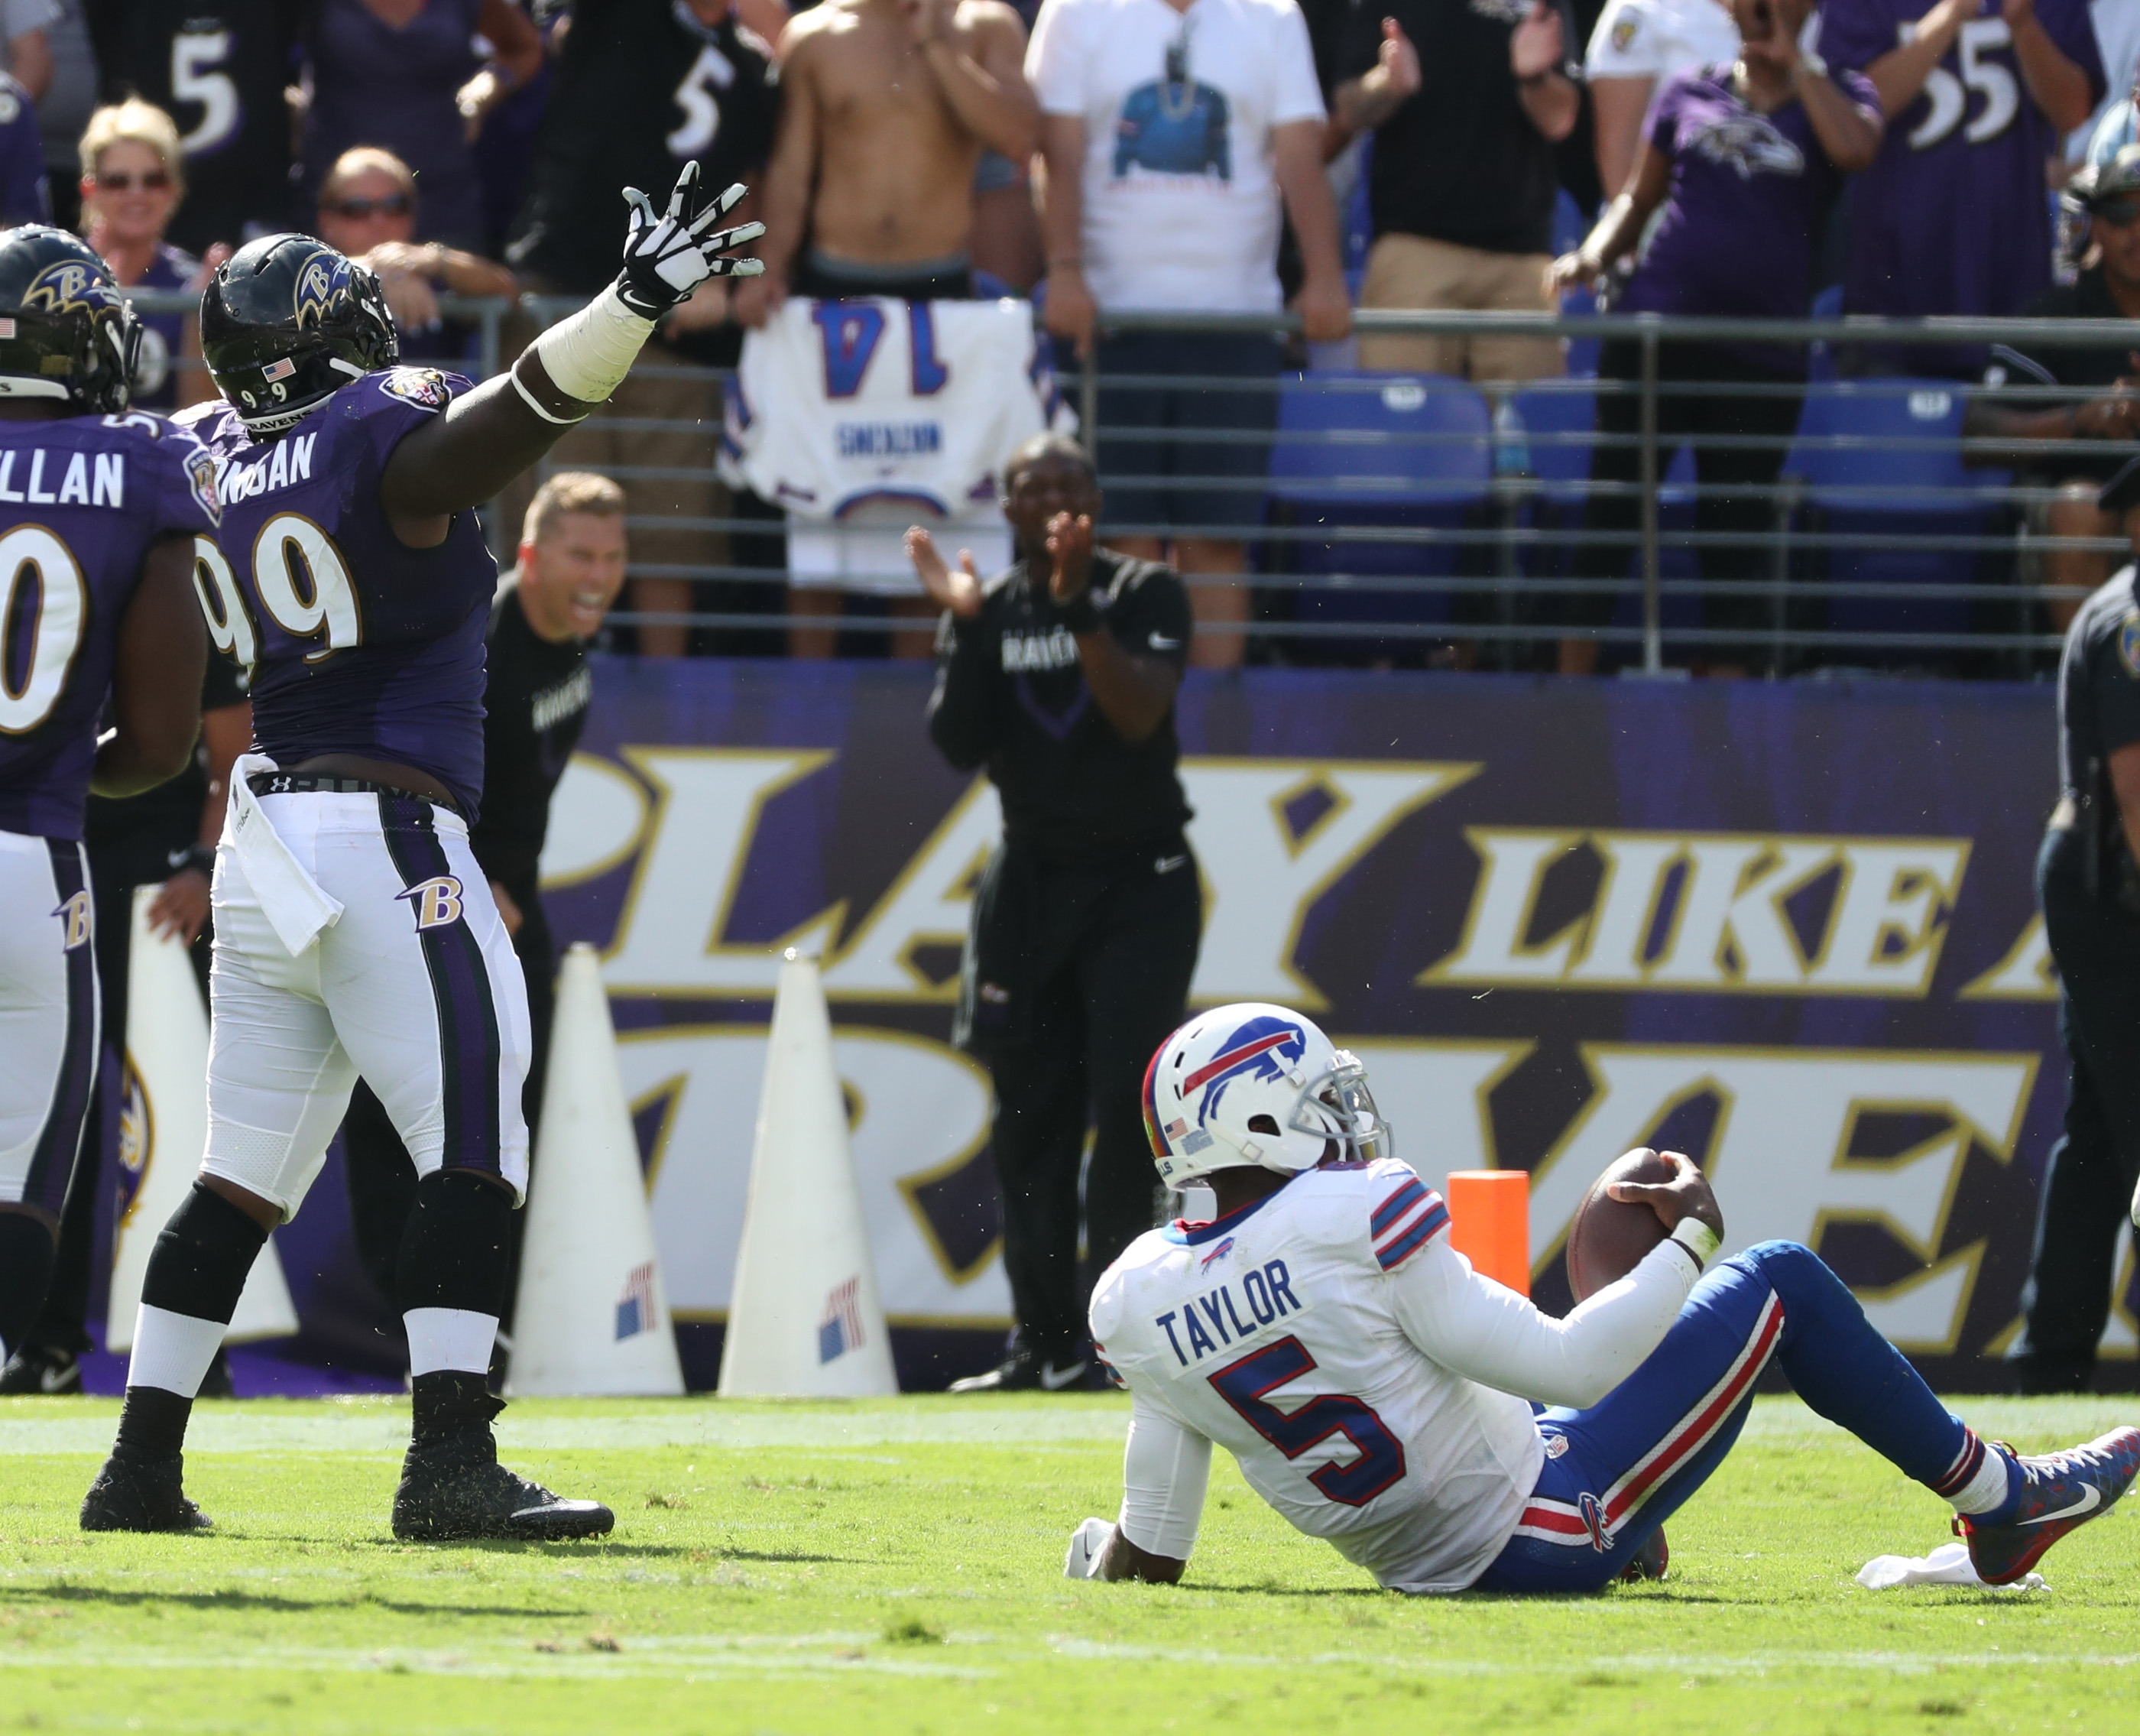 Bills quarterback Tyrod Taylor is sacked by Ravens defensive end Timmy Jernigan in the fourth quarter. The Bills produced just 160 total yards of offense on Sunday.